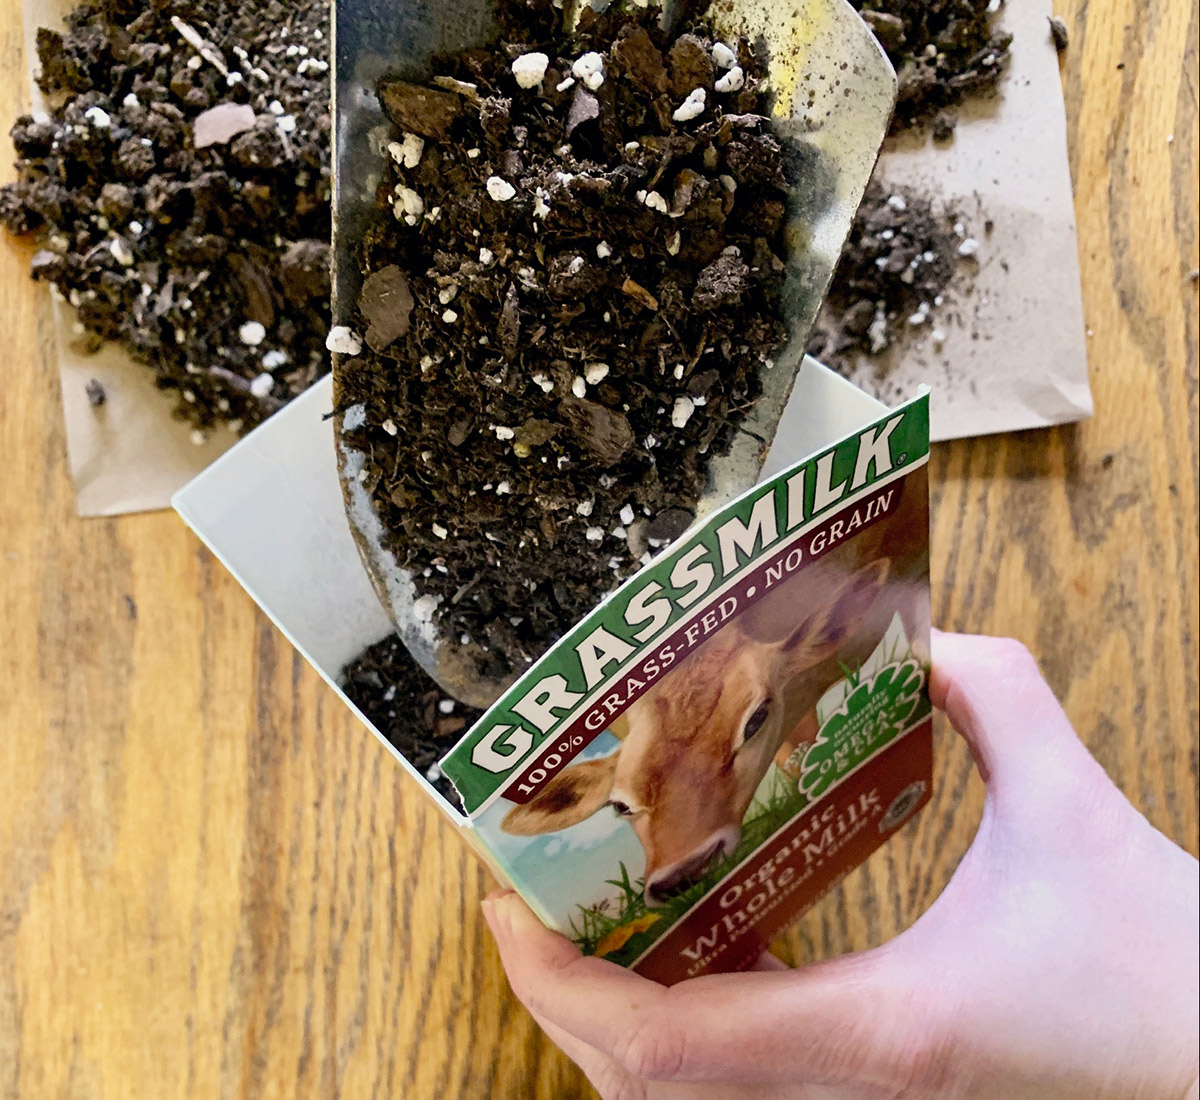 Pour dirt into the Organic Valley Grassmilk container to prep for the seeds.